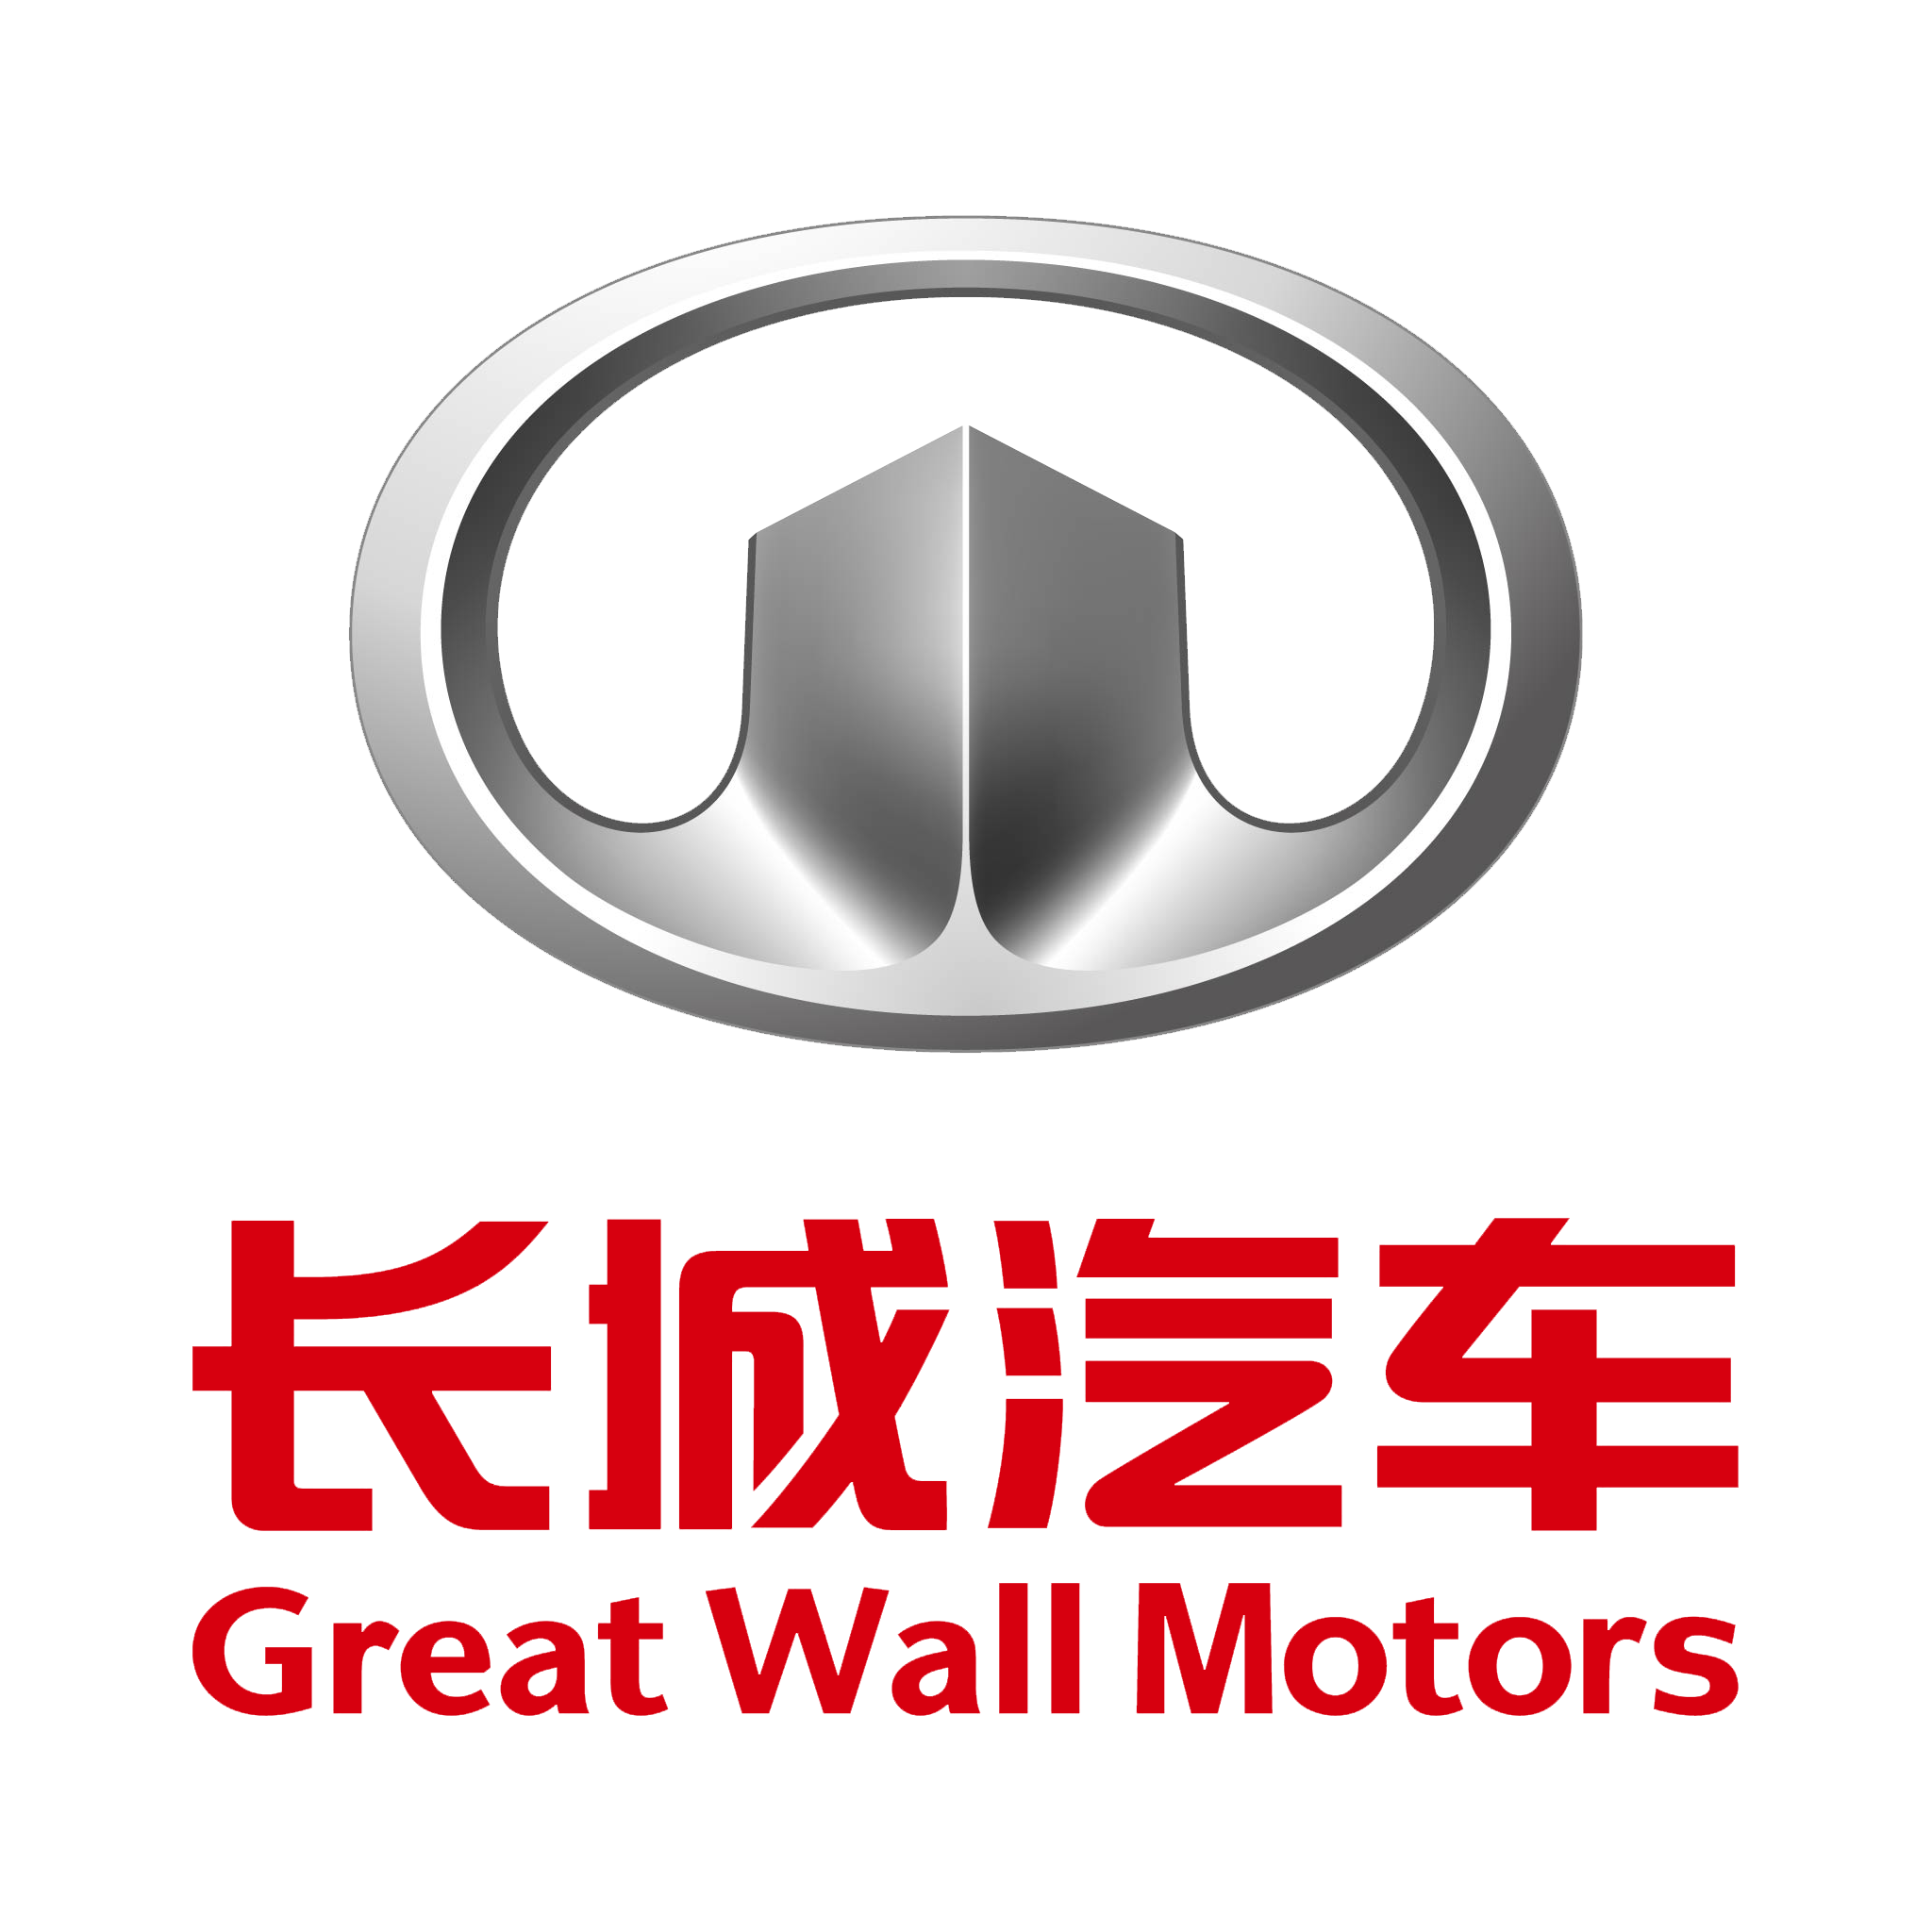 Great Wall Logo Hd Png Meaning Information Carlogos Org